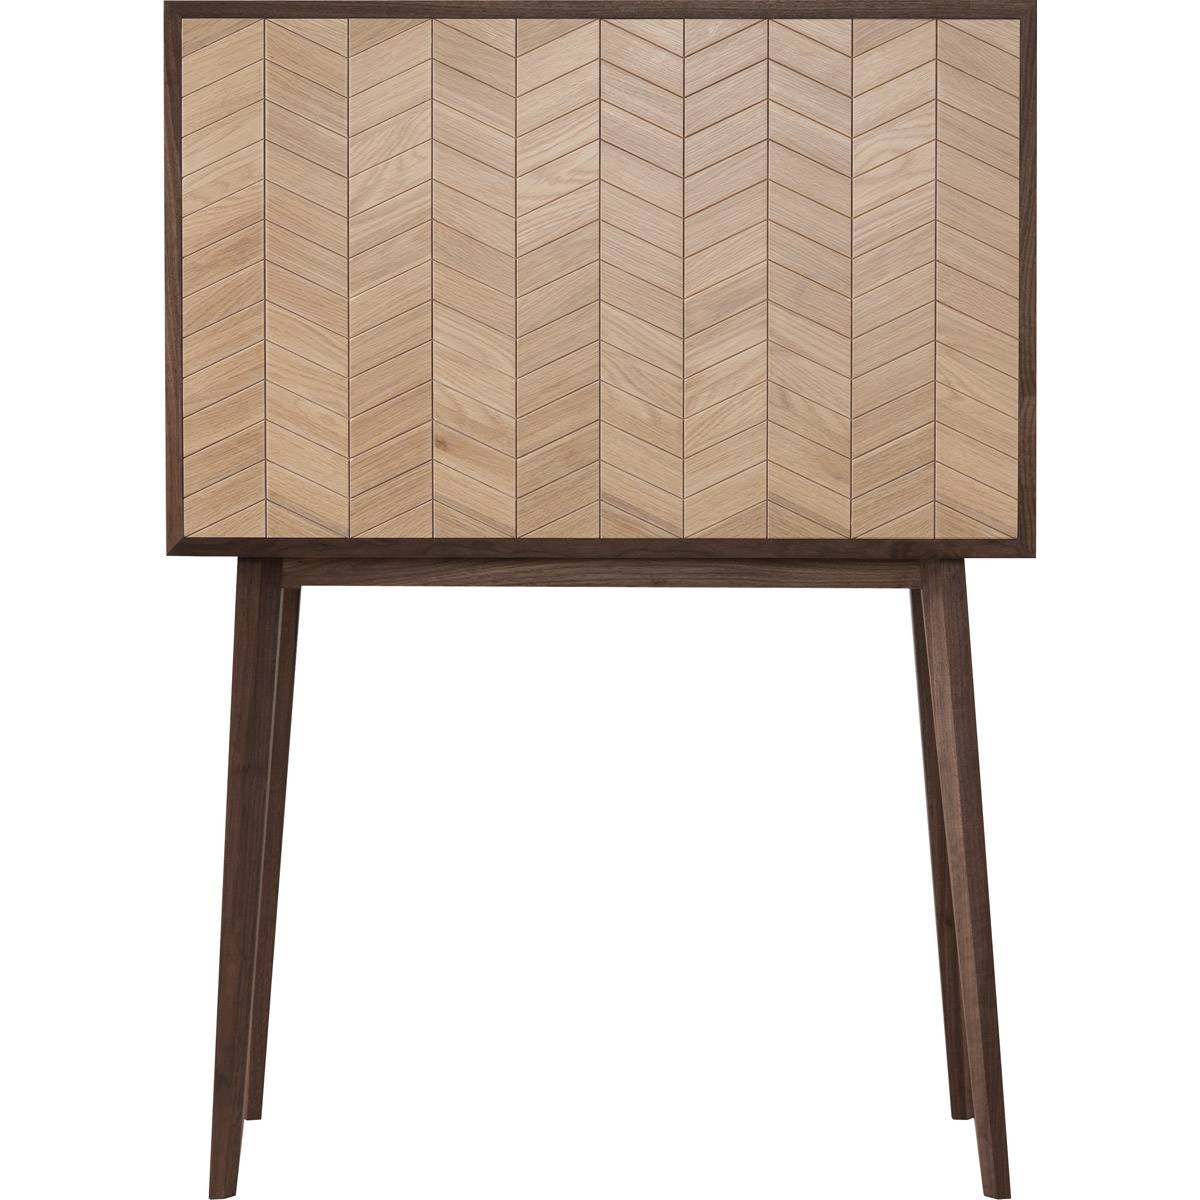 Mister Bar/sideboard/desk | Wewood | Horne throughout Desk Sideboards (Image 16 of 30)